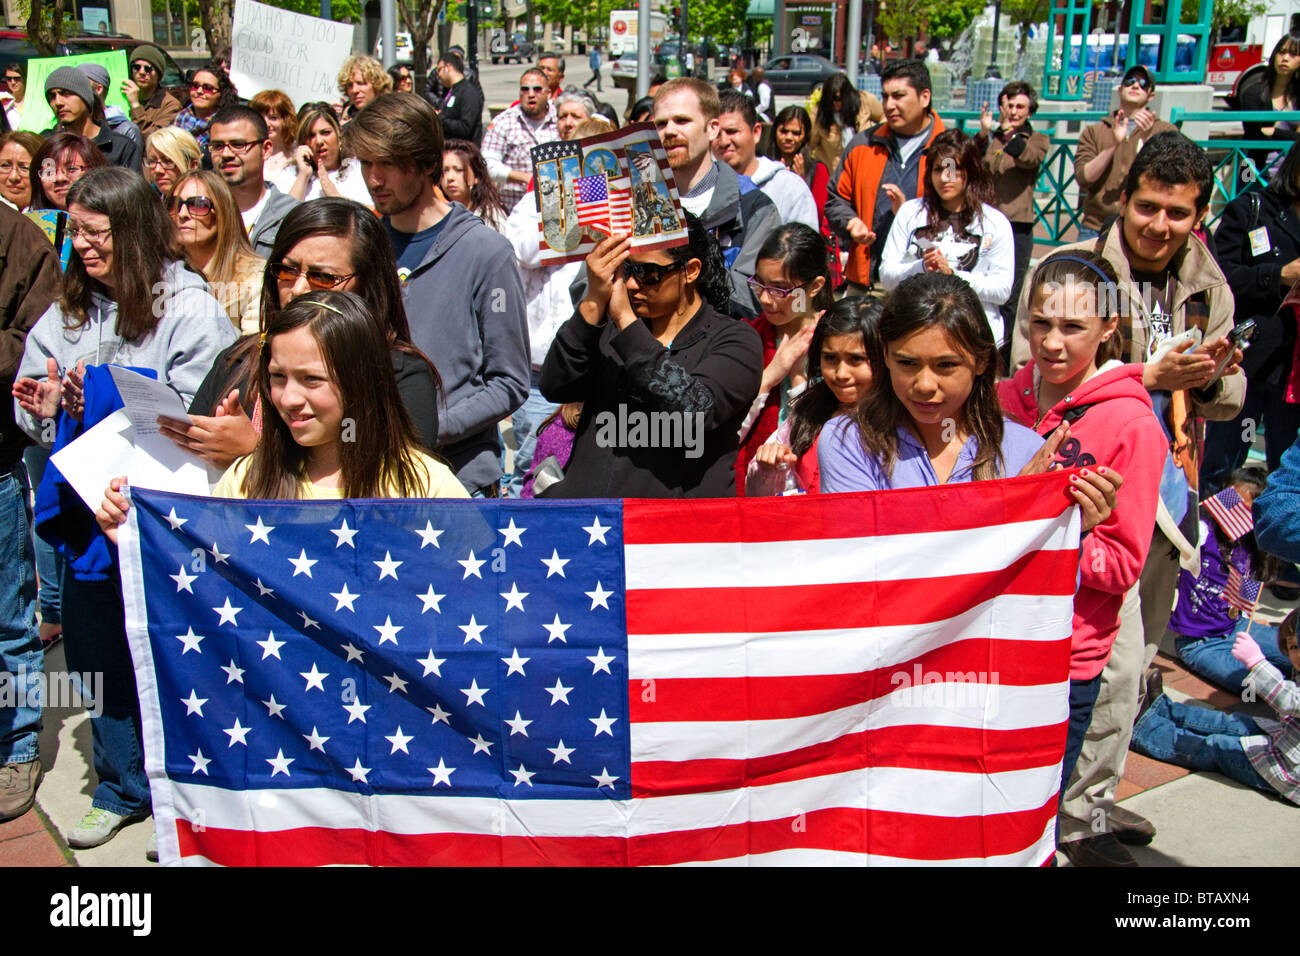 People protest the anti-illegal immigration Arizona Senate Bill 1070 in Boise, Idaho, USA. - Stock Image